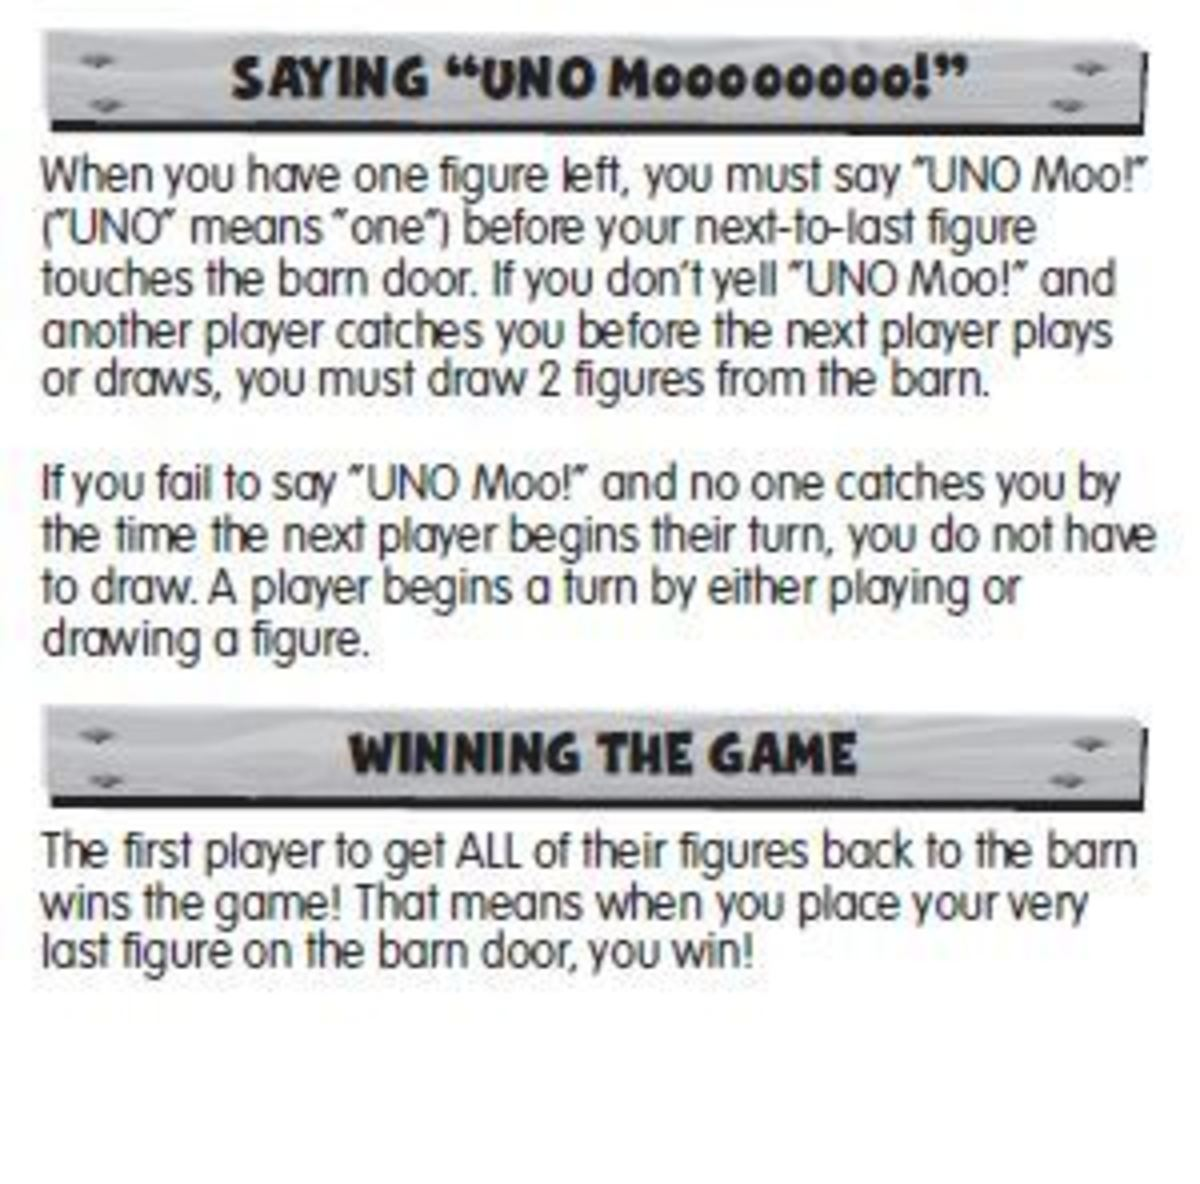 UNO Moo How to Win